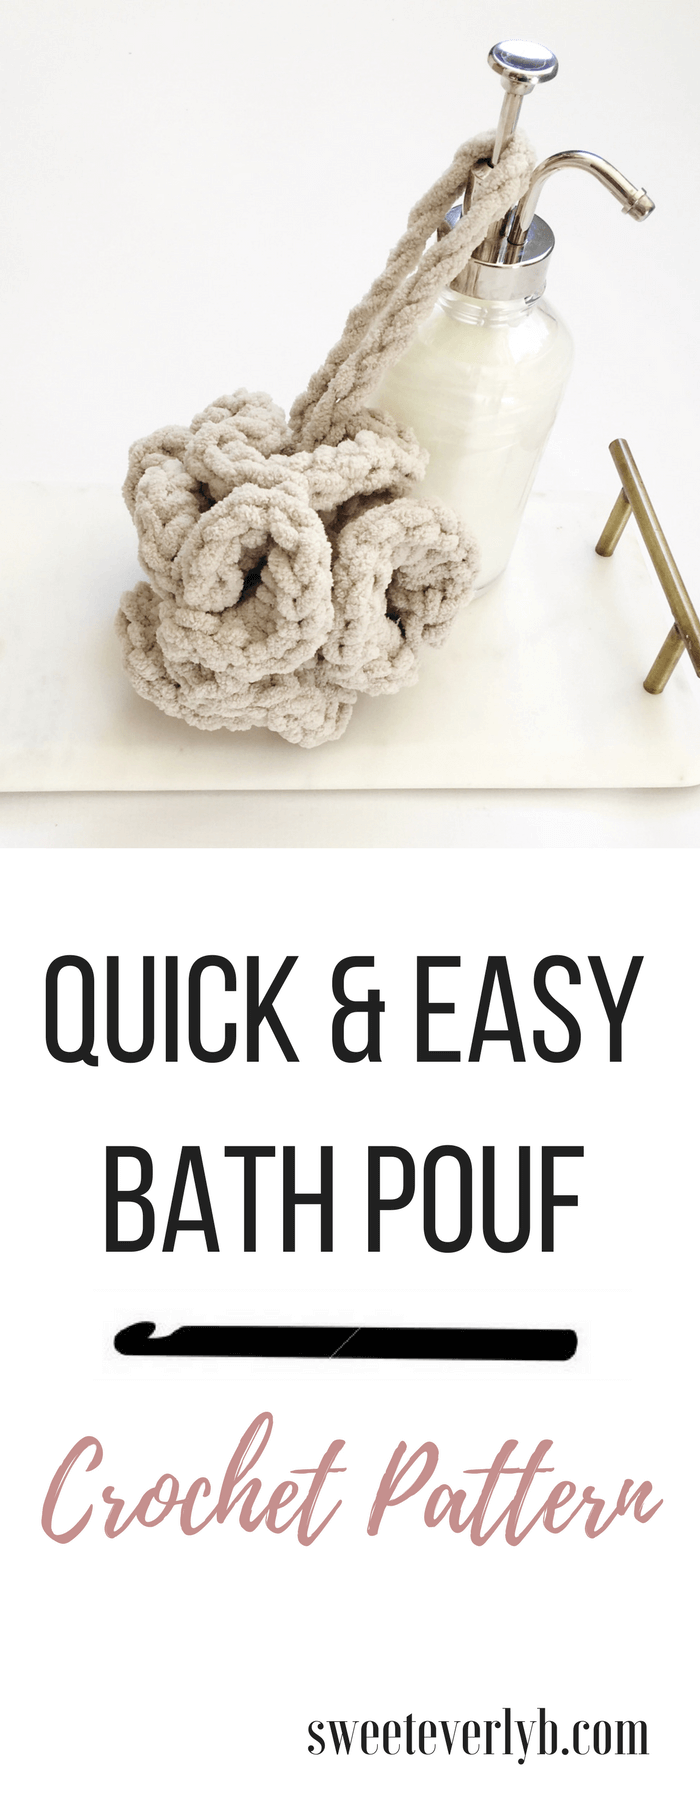 A free crochet bath pouf pattern that makes a great DIY gift. You can make this gift in 30 minutes!